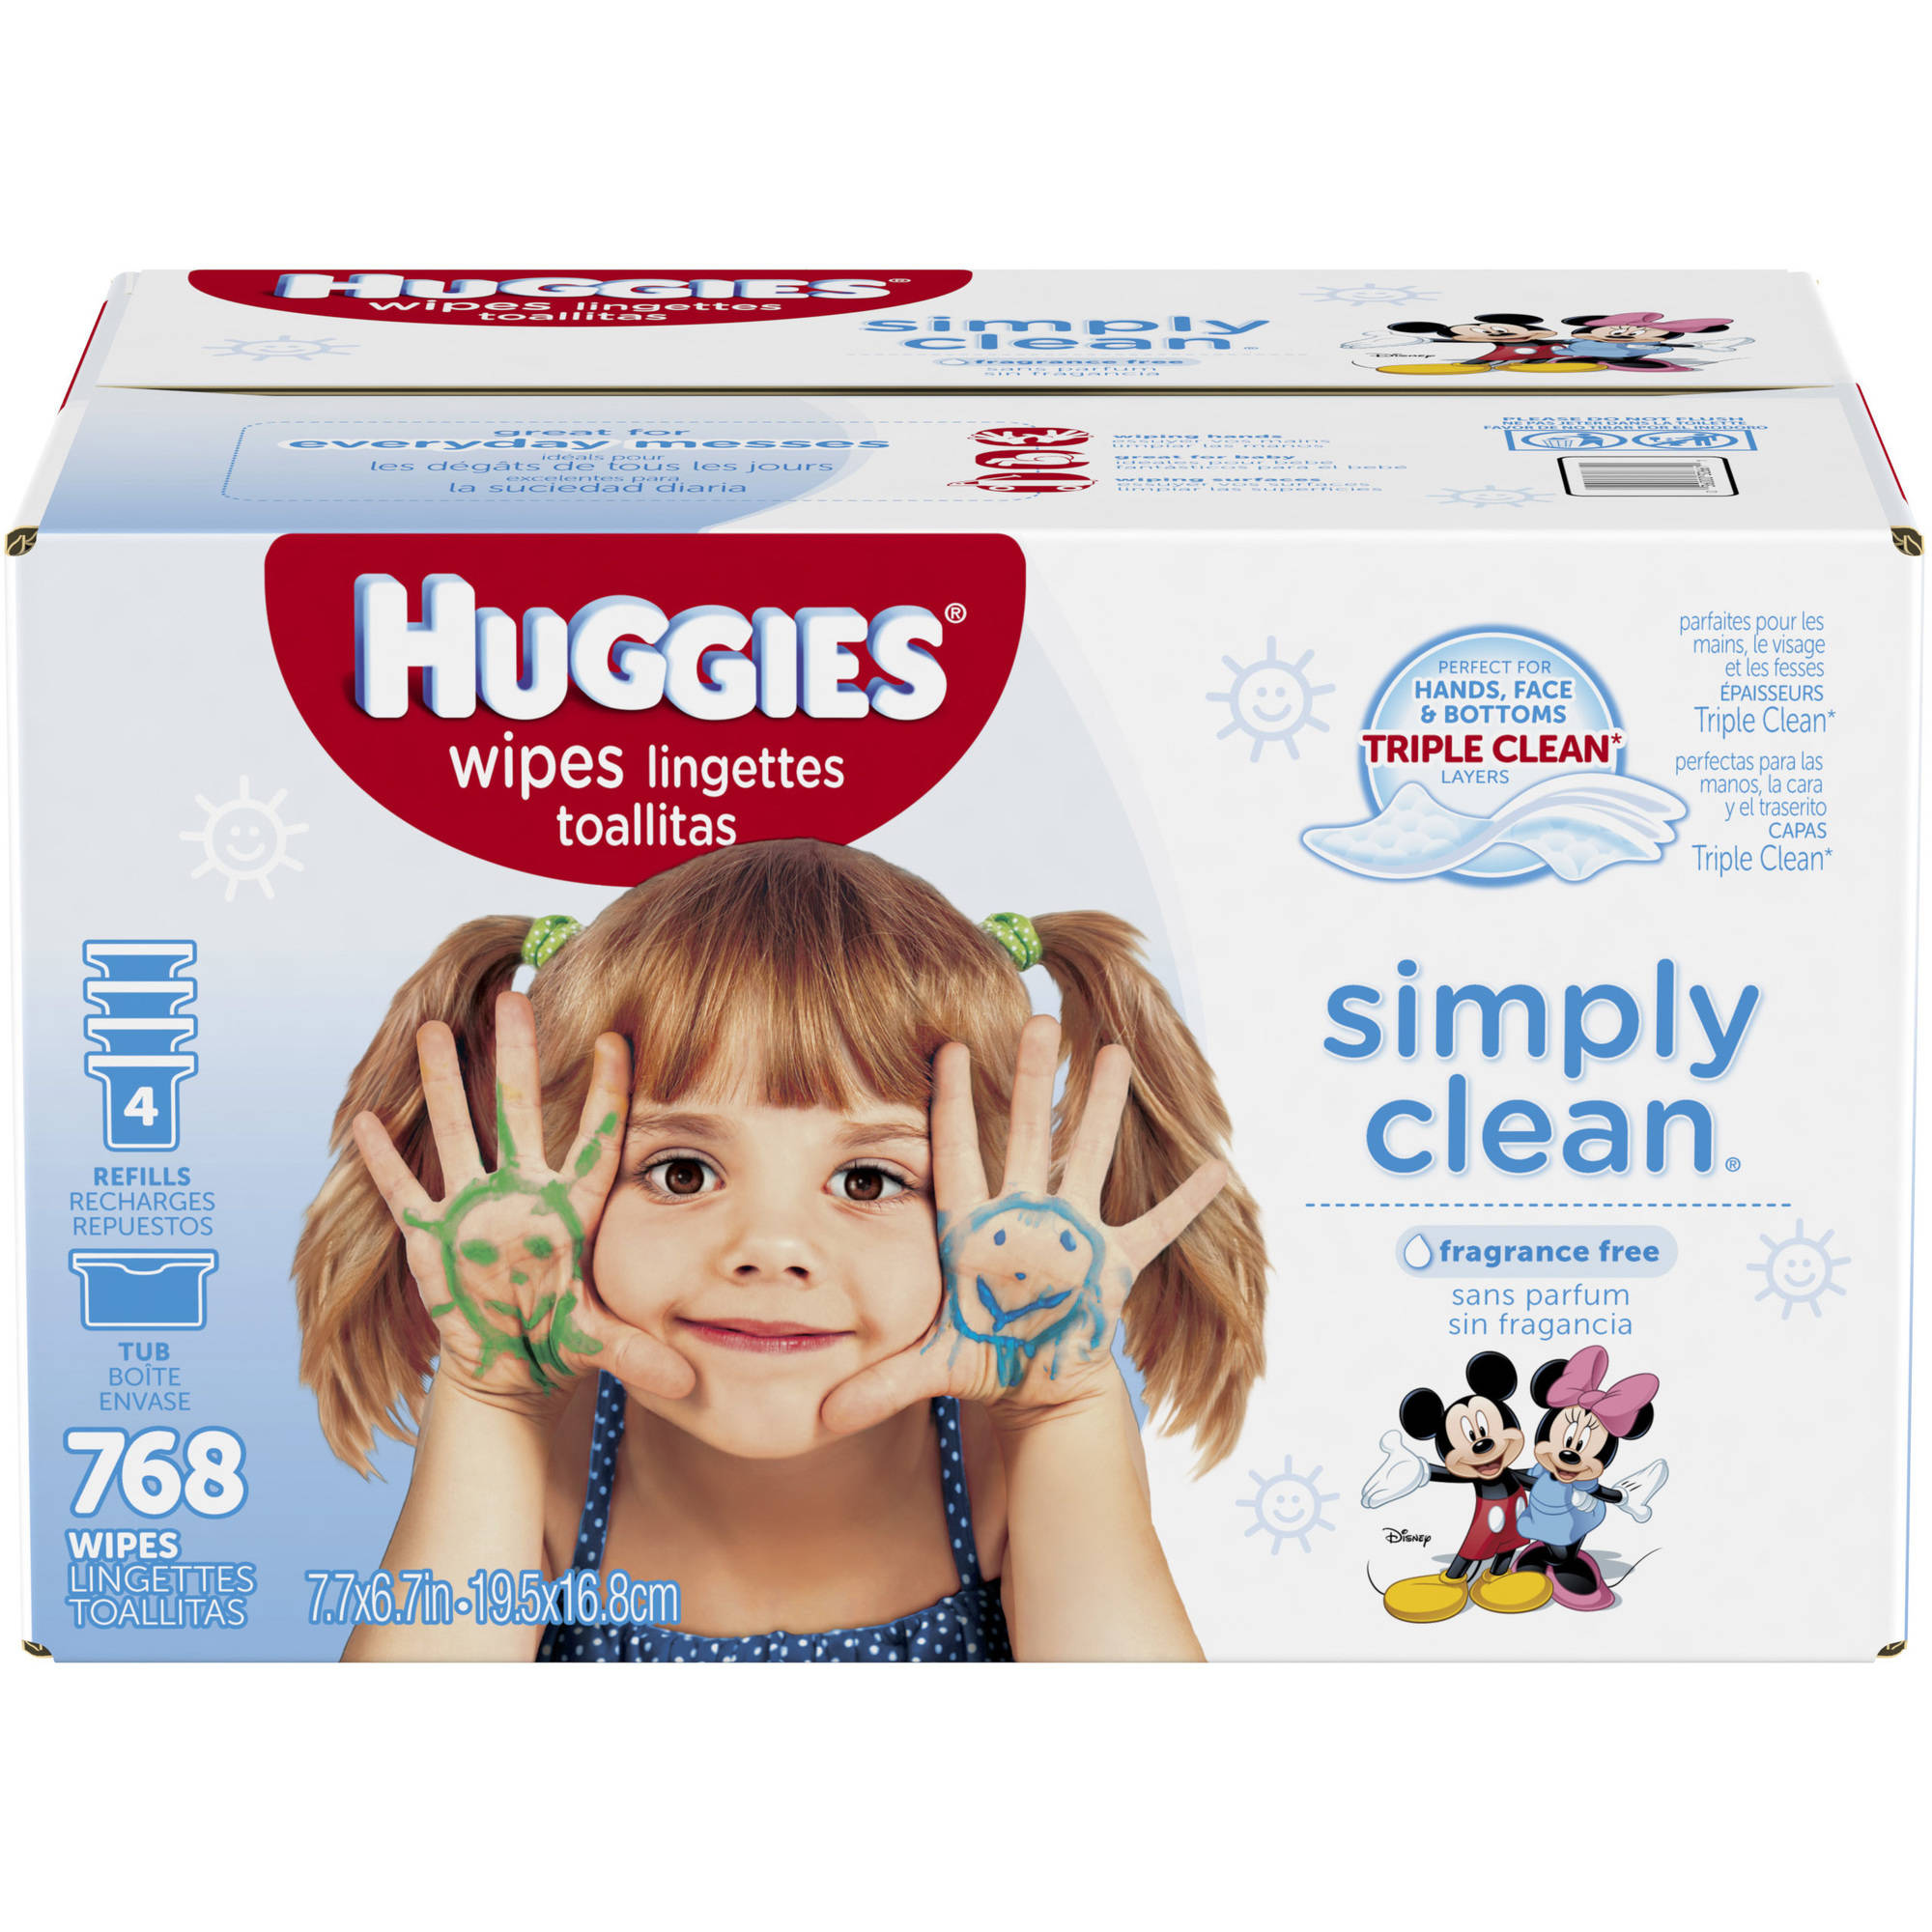 Huggies Simply Clean Wipes 768 Wipes